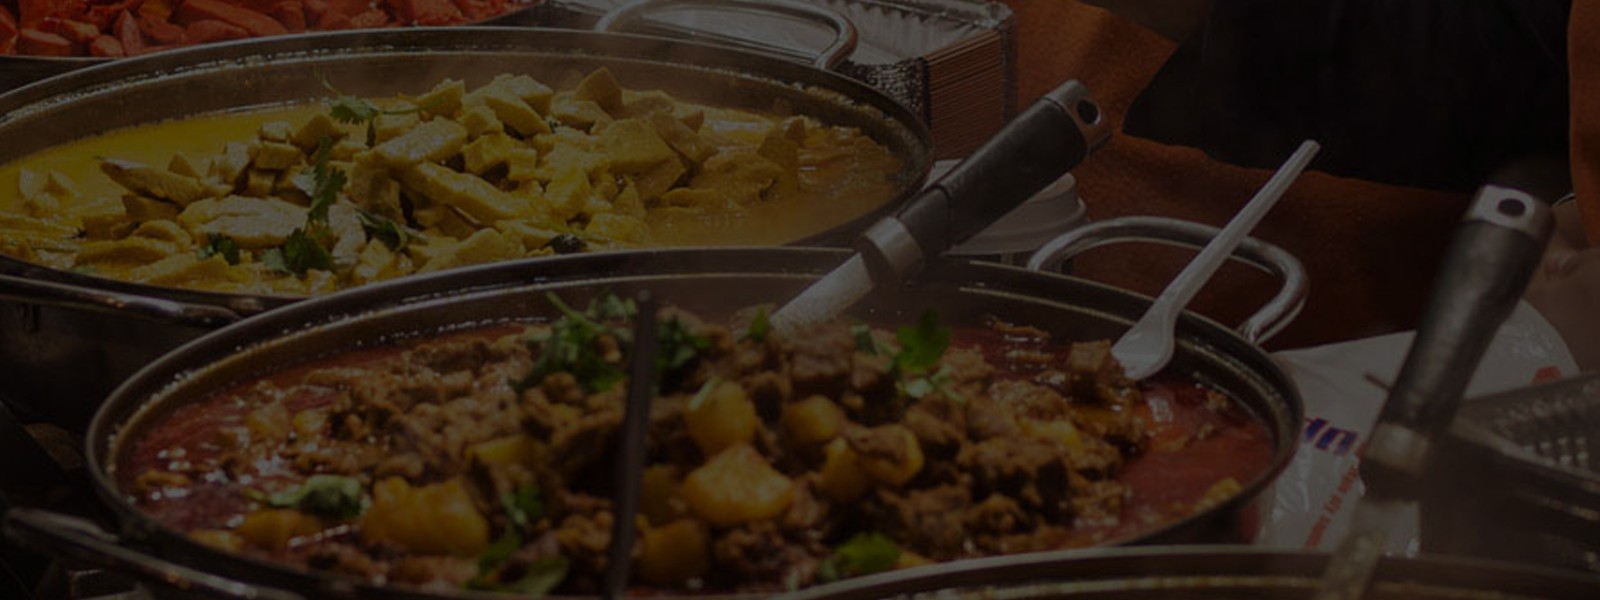 DAILY LUNCH BUFFET $17.50 11:30 AM to 2:30 PM Salads, Coolers, Appetizers, Mains Desserts